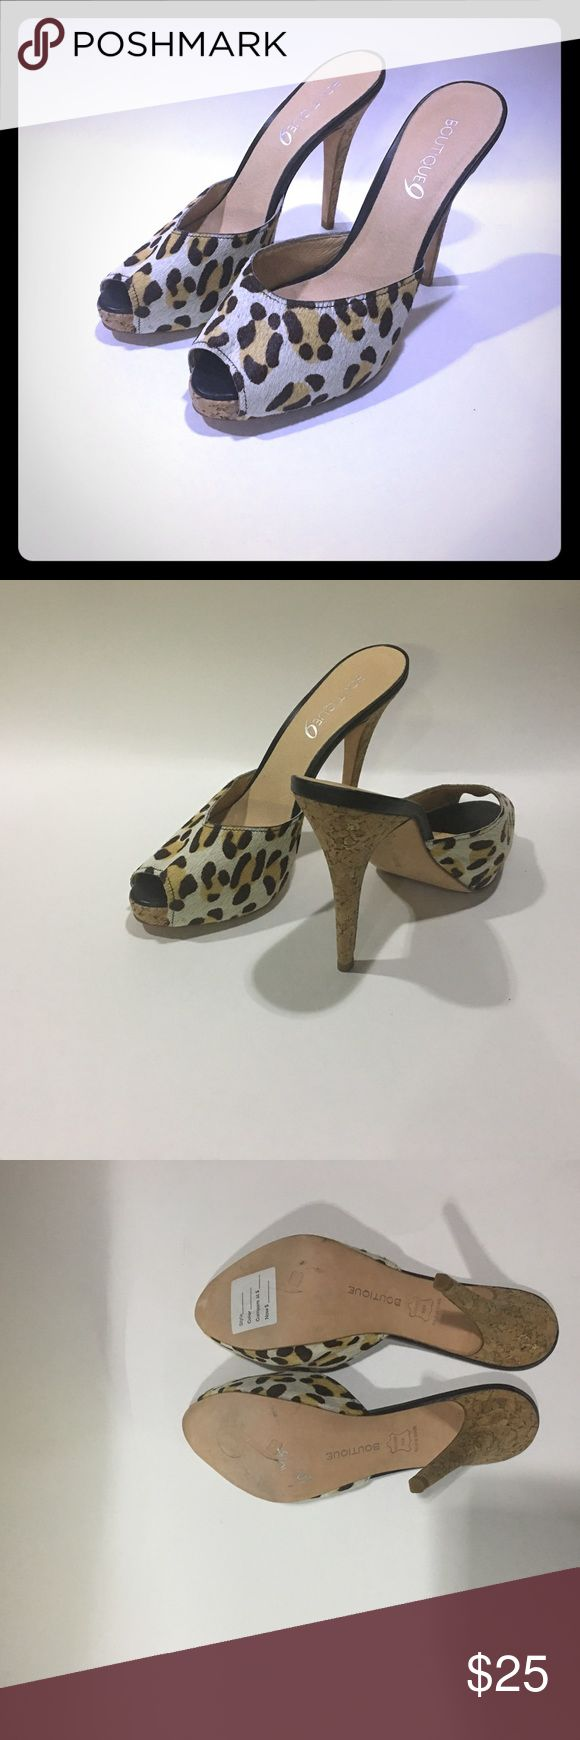 """Boutique 9 Pony Hair Animal Print Heeled Sandals This is a pre-owned pair of Boutique 9 size 10 heeled sandals.  The sandals have a cheetah animal print design that has a fur like texture and the heel is made of cork.  Cork shows some lines / scuffs/ etc due to storage.  Heel height approximately 5.5"""".  Leather sole.  Made in Brazil. Boutique 9 Shoes Heels"""